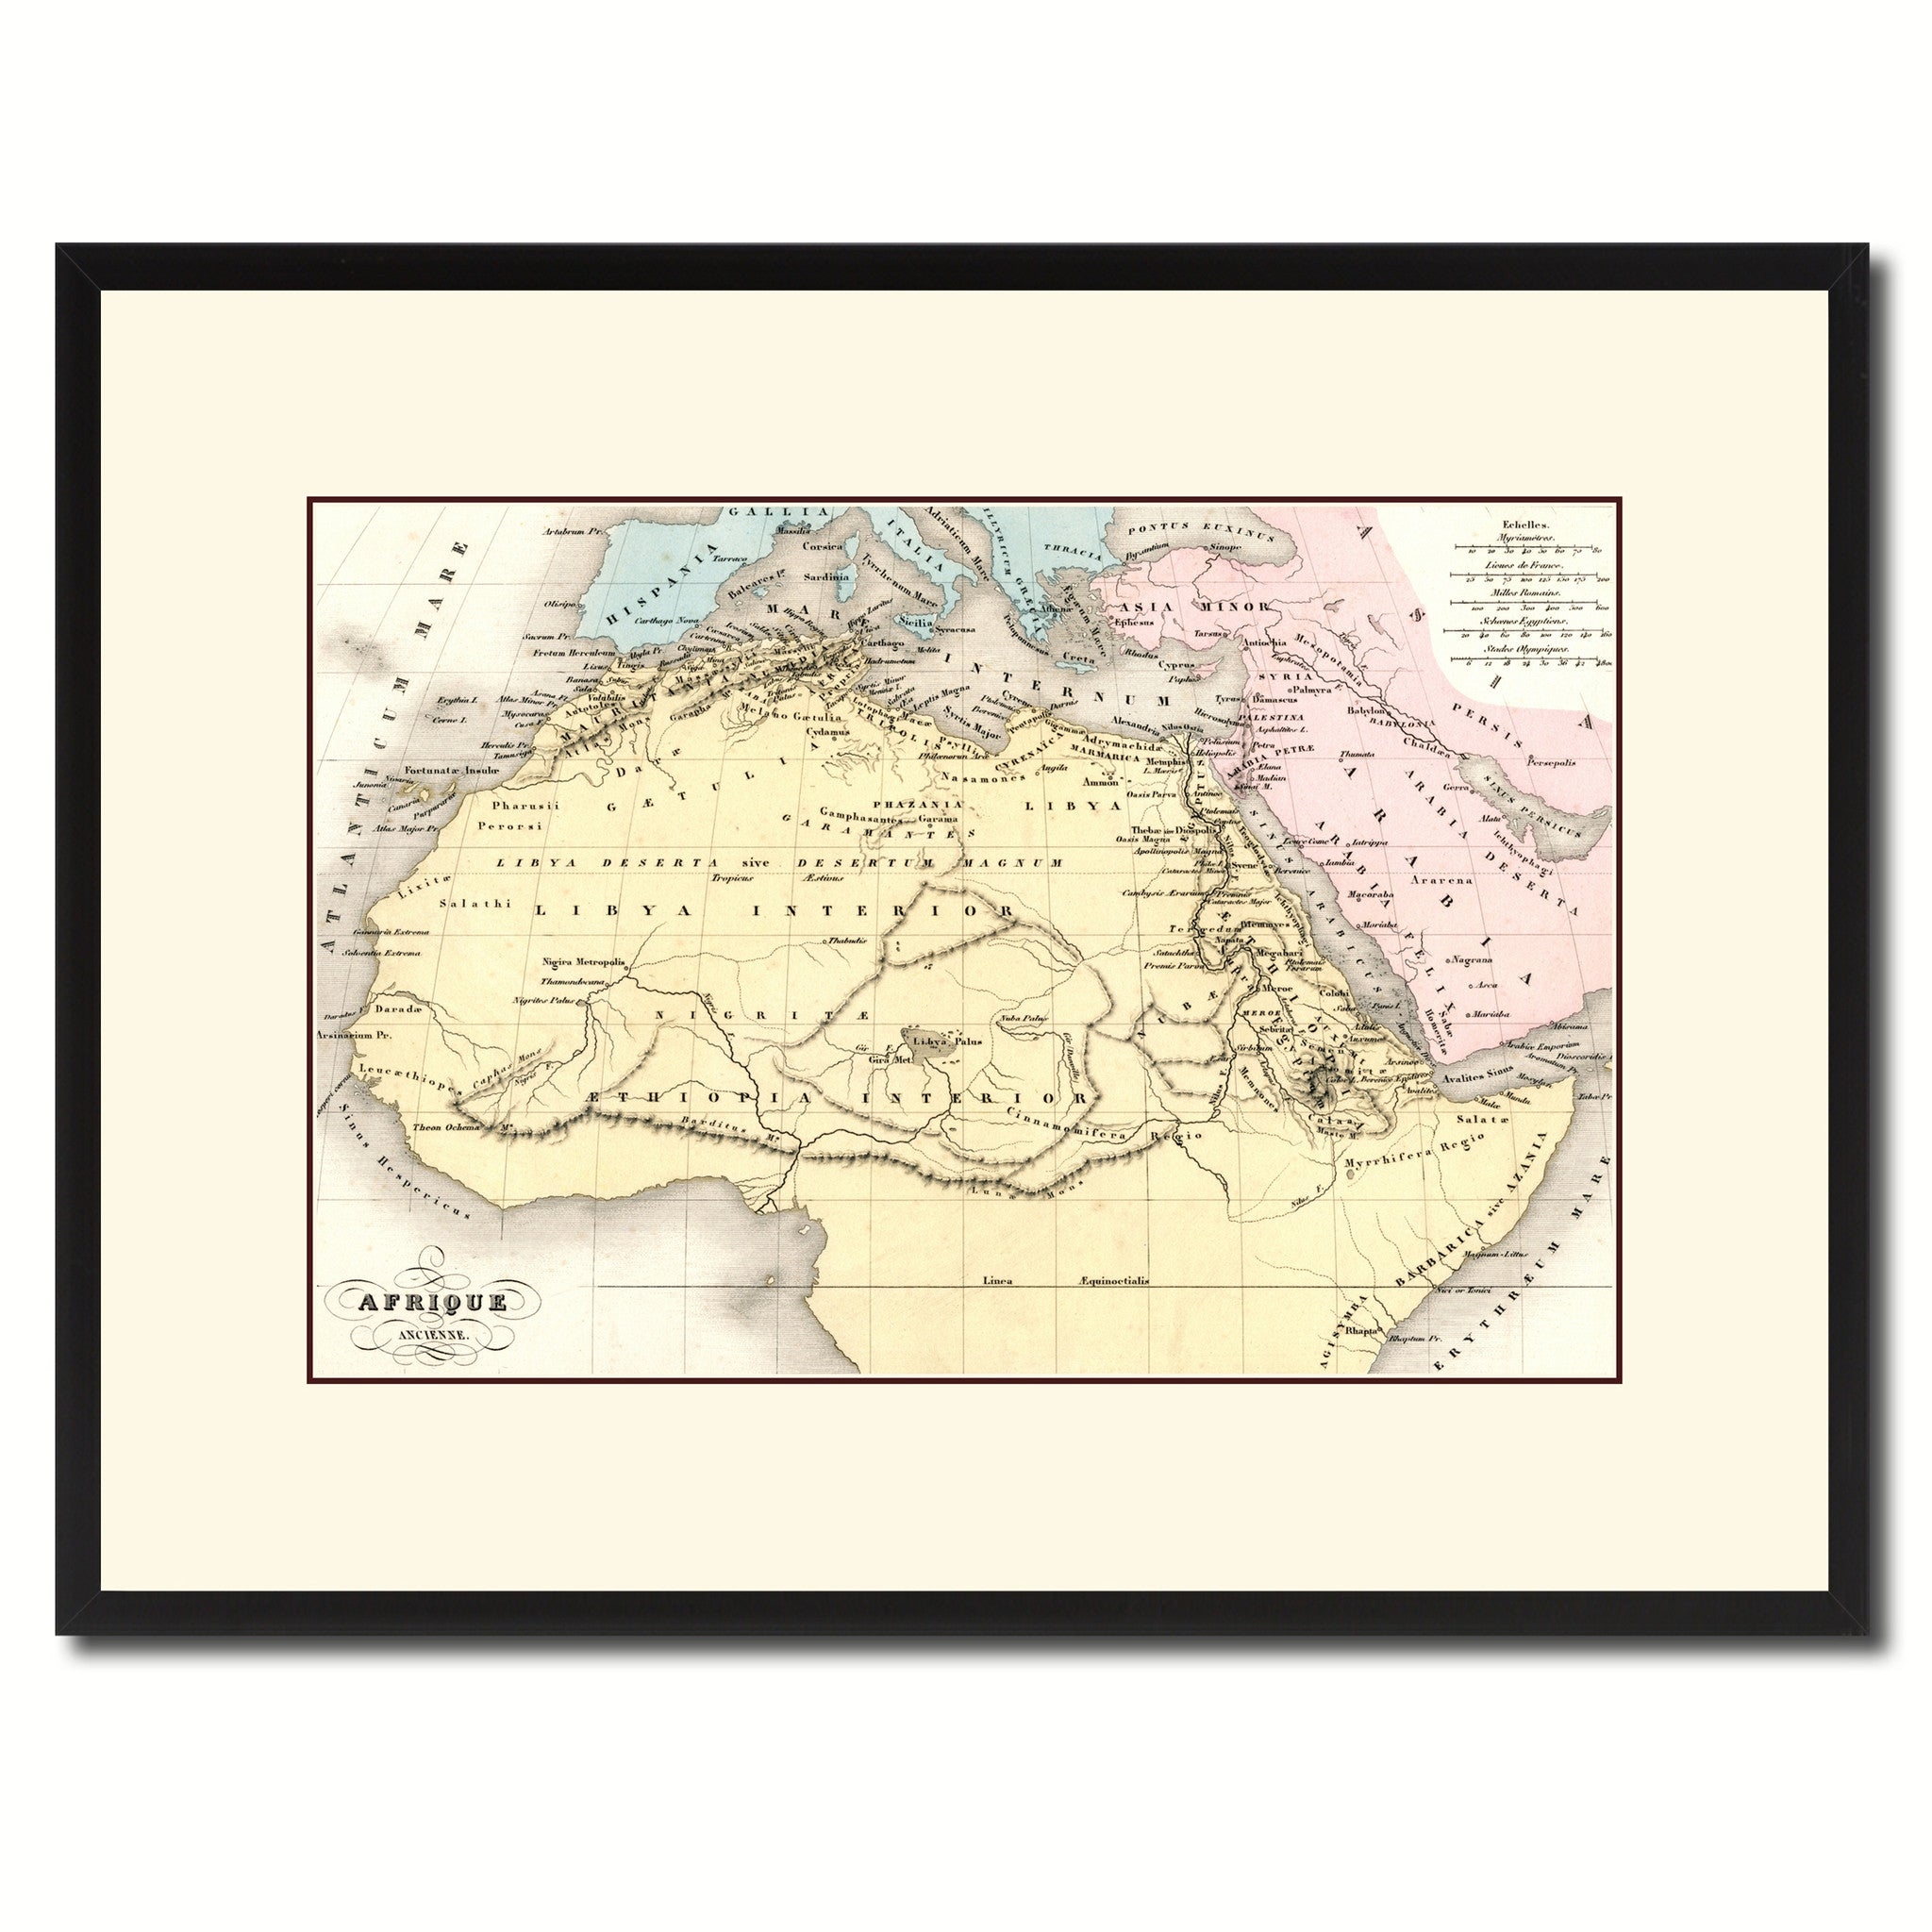 Ancient Africa Vintage Antique Map Wall Art Bedroom Home Decor Gift ...